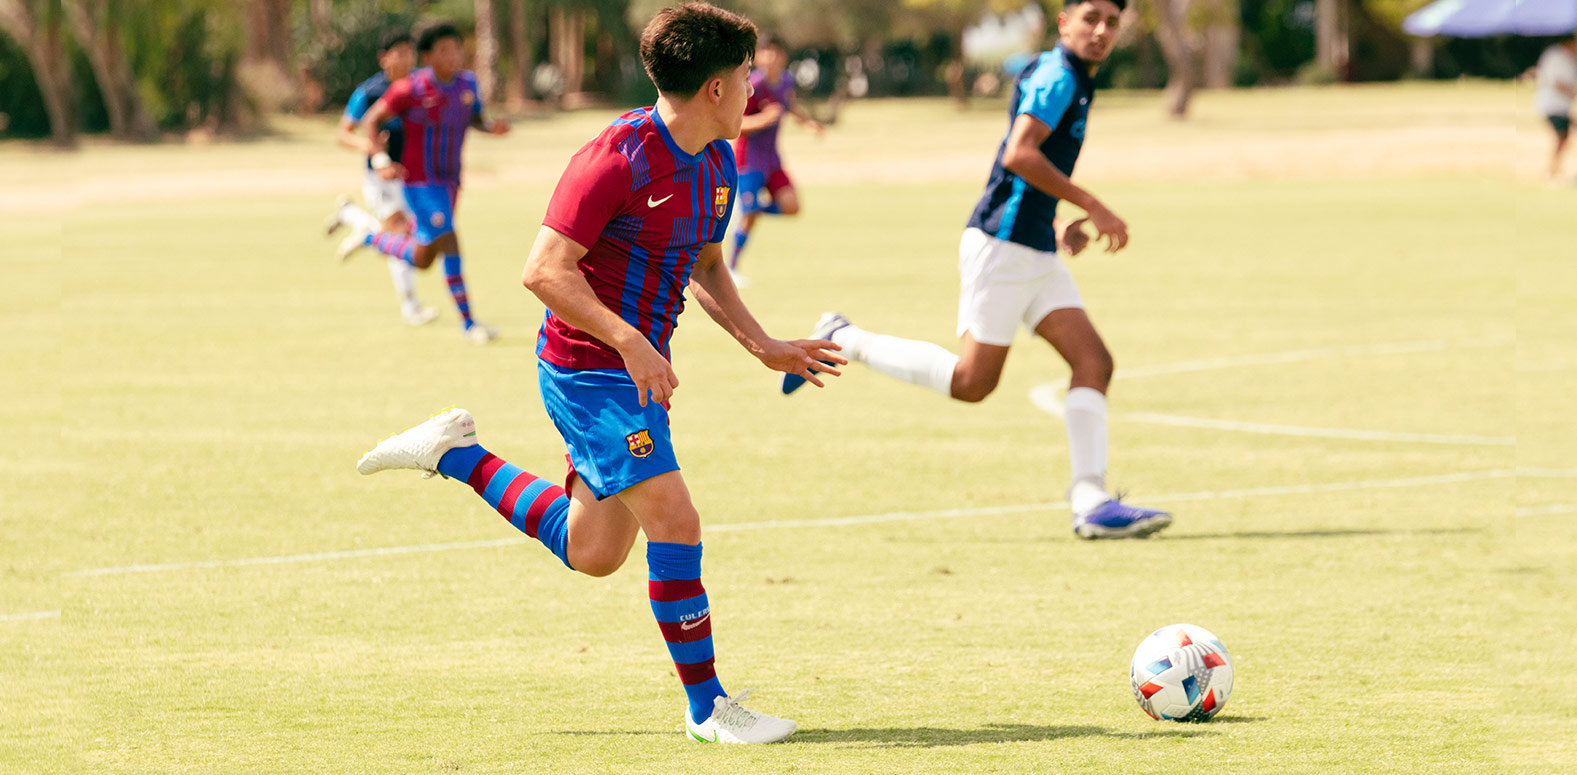 Barca Residency Academy player Yahir Gonzalez driving the ball up the field